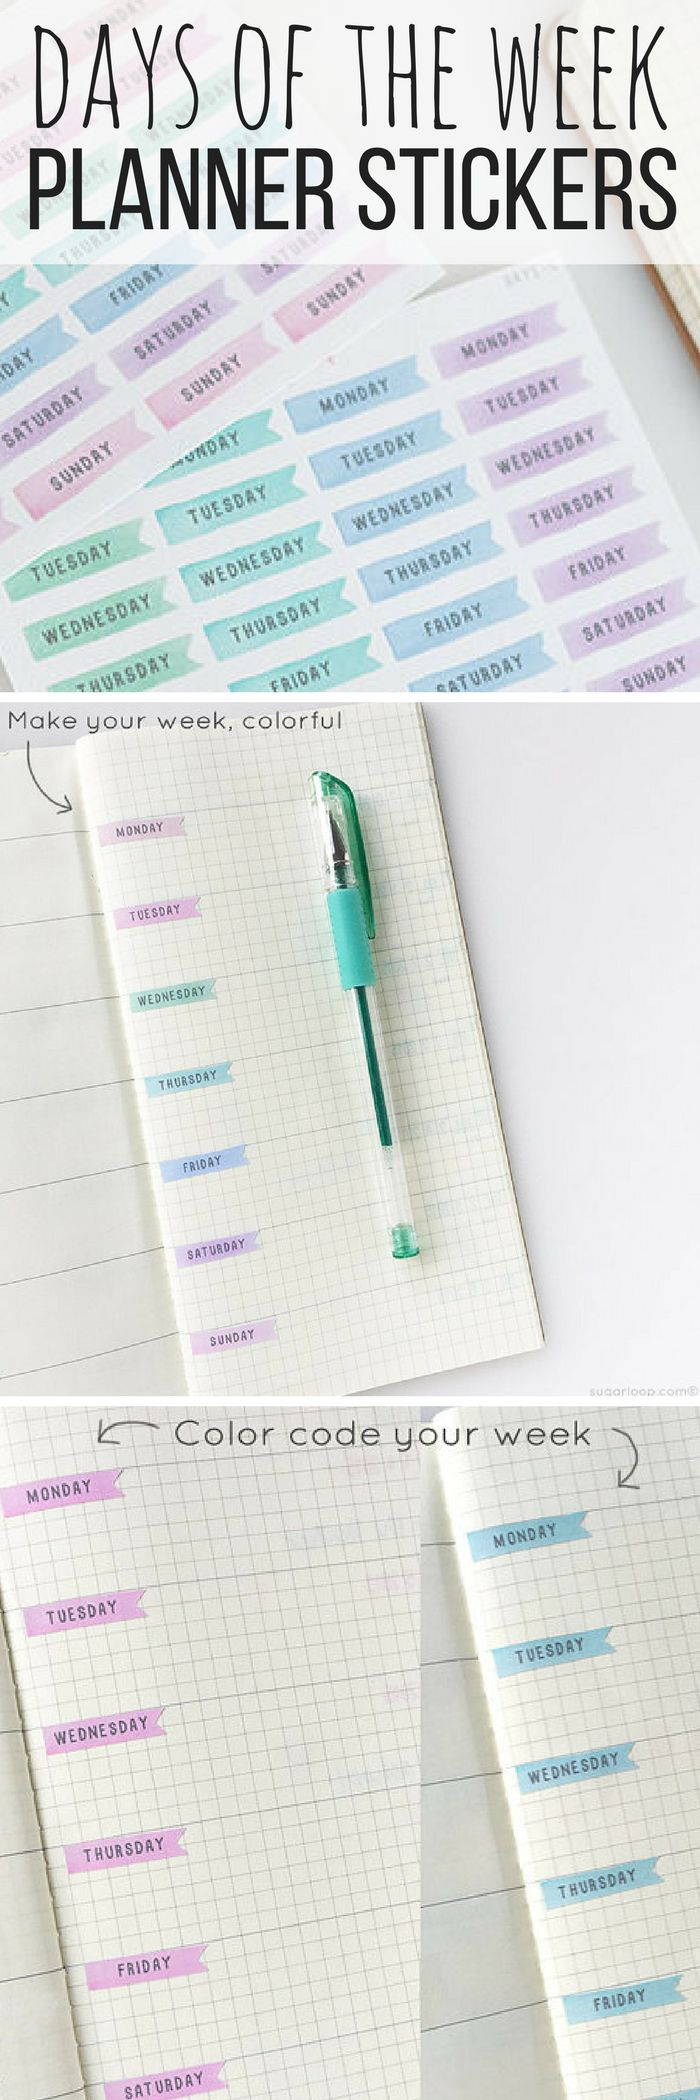 Cute days of the week planner stickers! I love the pastel colors of these. These stickers would work well in a bullet journal, or just an ordinary planner to add some color! Or like in the picture, you can turn any notebook into a journal with them! So pretty :) #ad #stationery #planner #stickers #journal #bujo